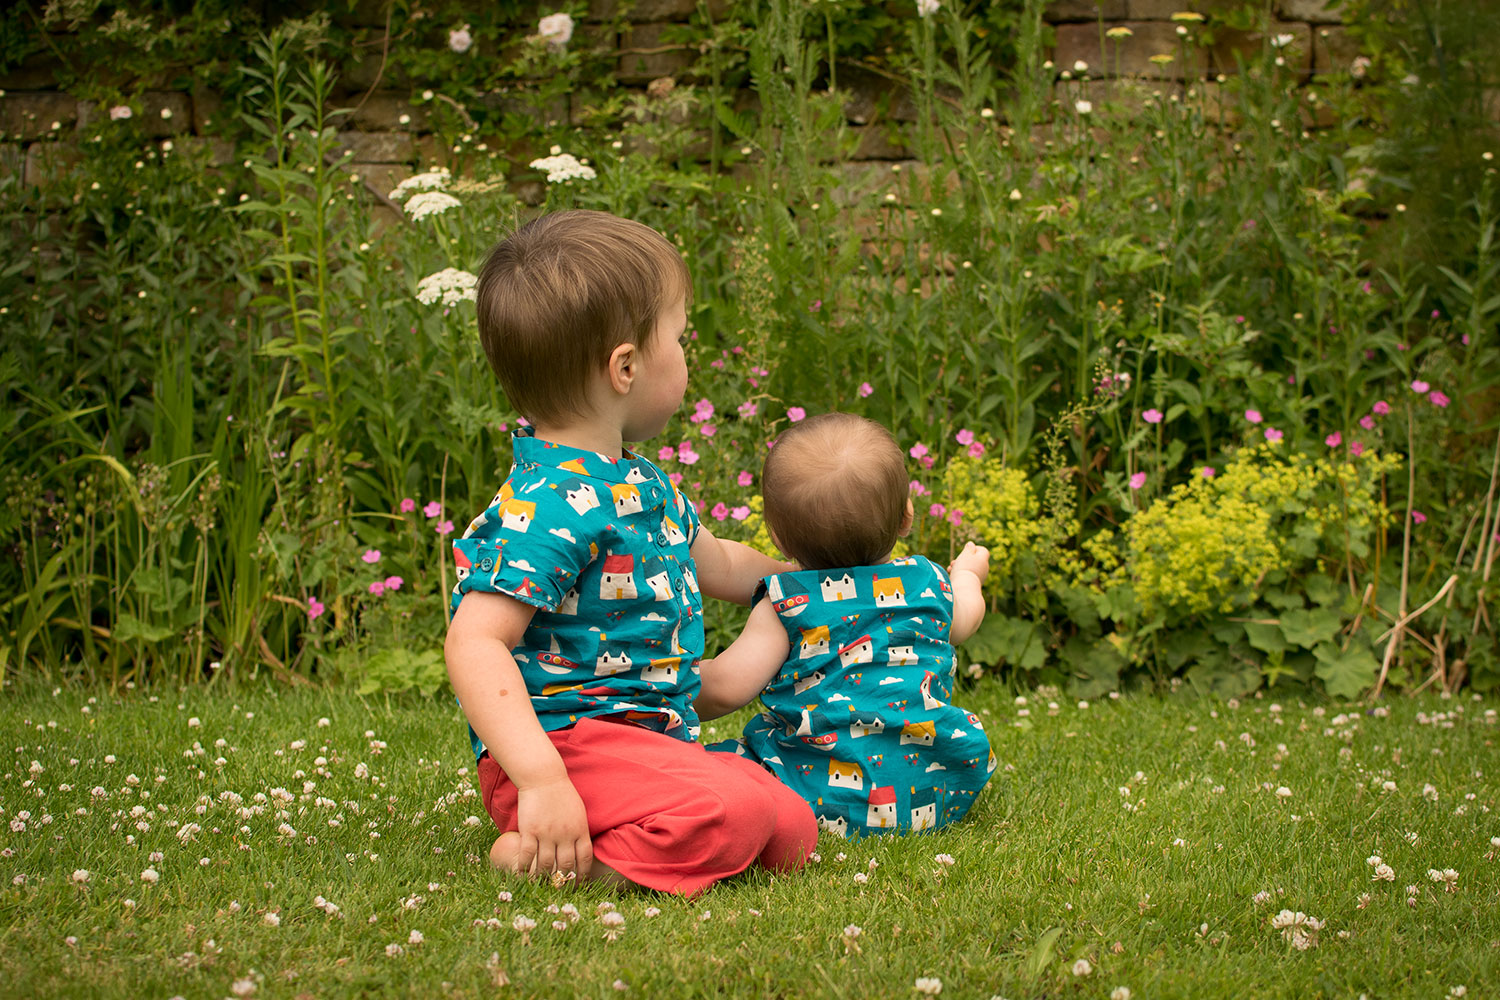 Two brothers, pre-schooler and baby wearing Sail Away playsuit and Sail Away Playaway top with Pillar Box red shorts by Little Green Radicals at Chastleton House, National Trust, near Stow0on-the-Wold - Fashion, outfits, style and bright clothes